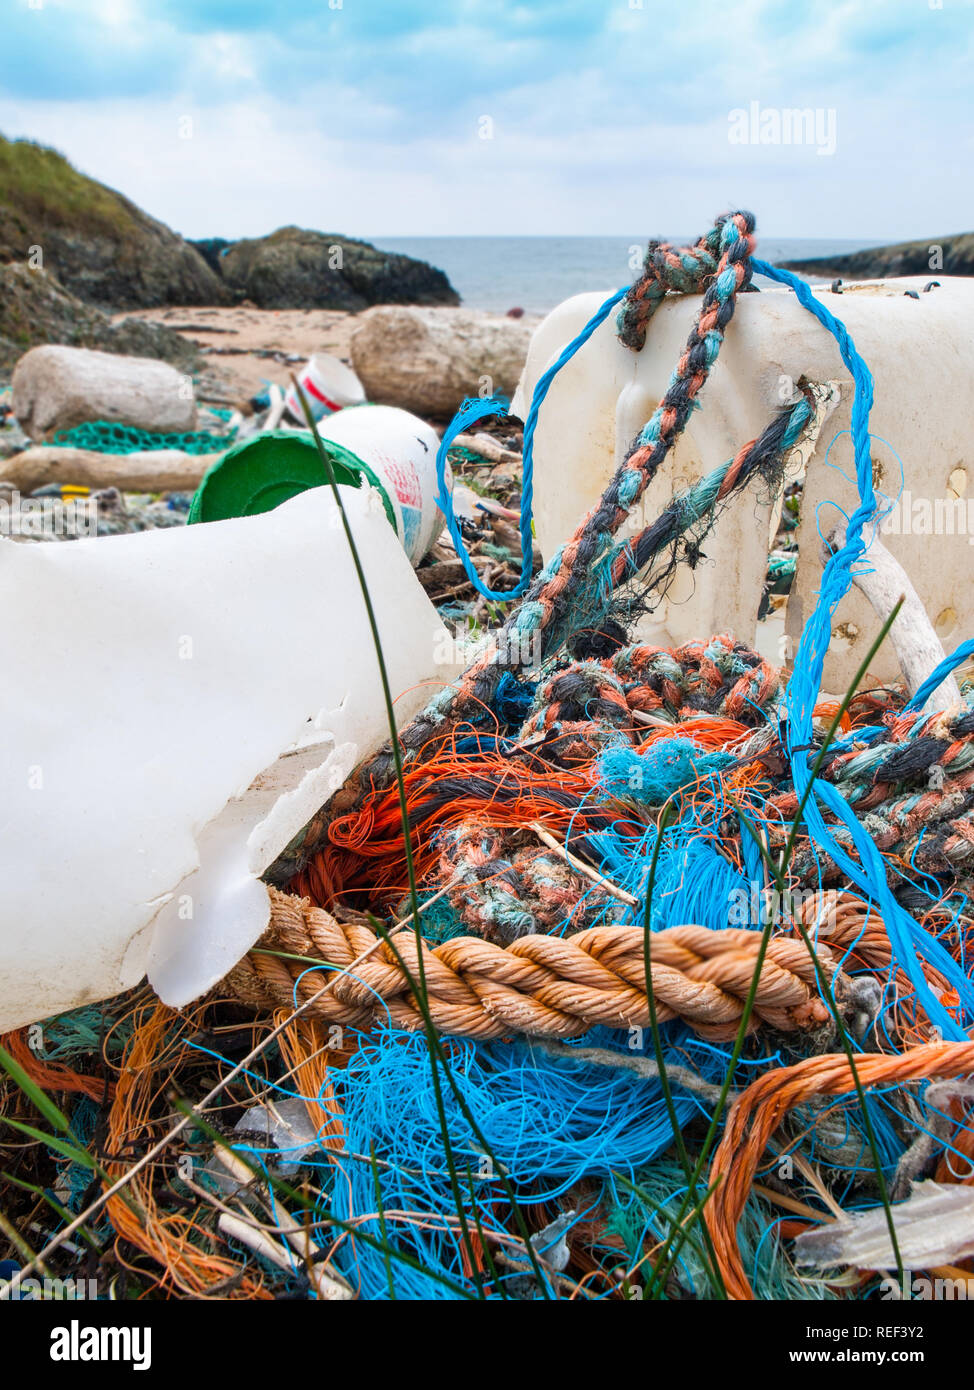 Plastics and other pollution washed up on a beach, Anglesey, Wales,UK - Stock Image